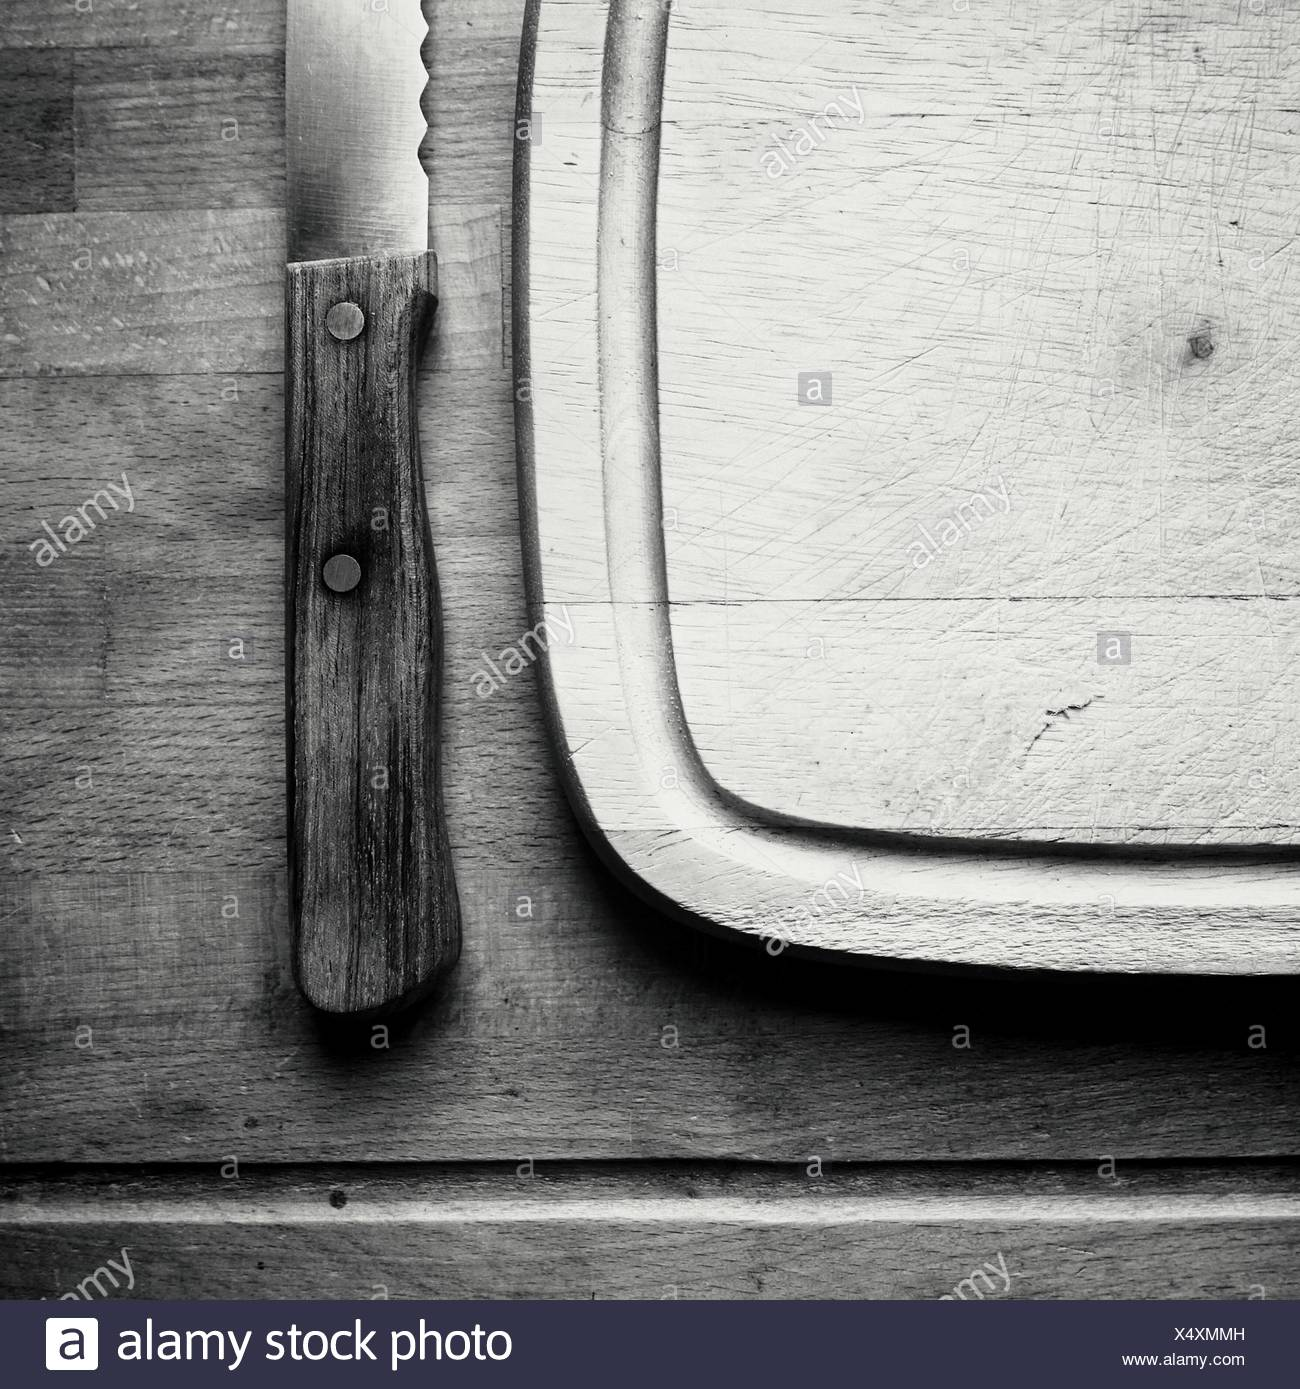 Directly Above Shot Of Steak Knife And Cutting Board On Table - Stock Image